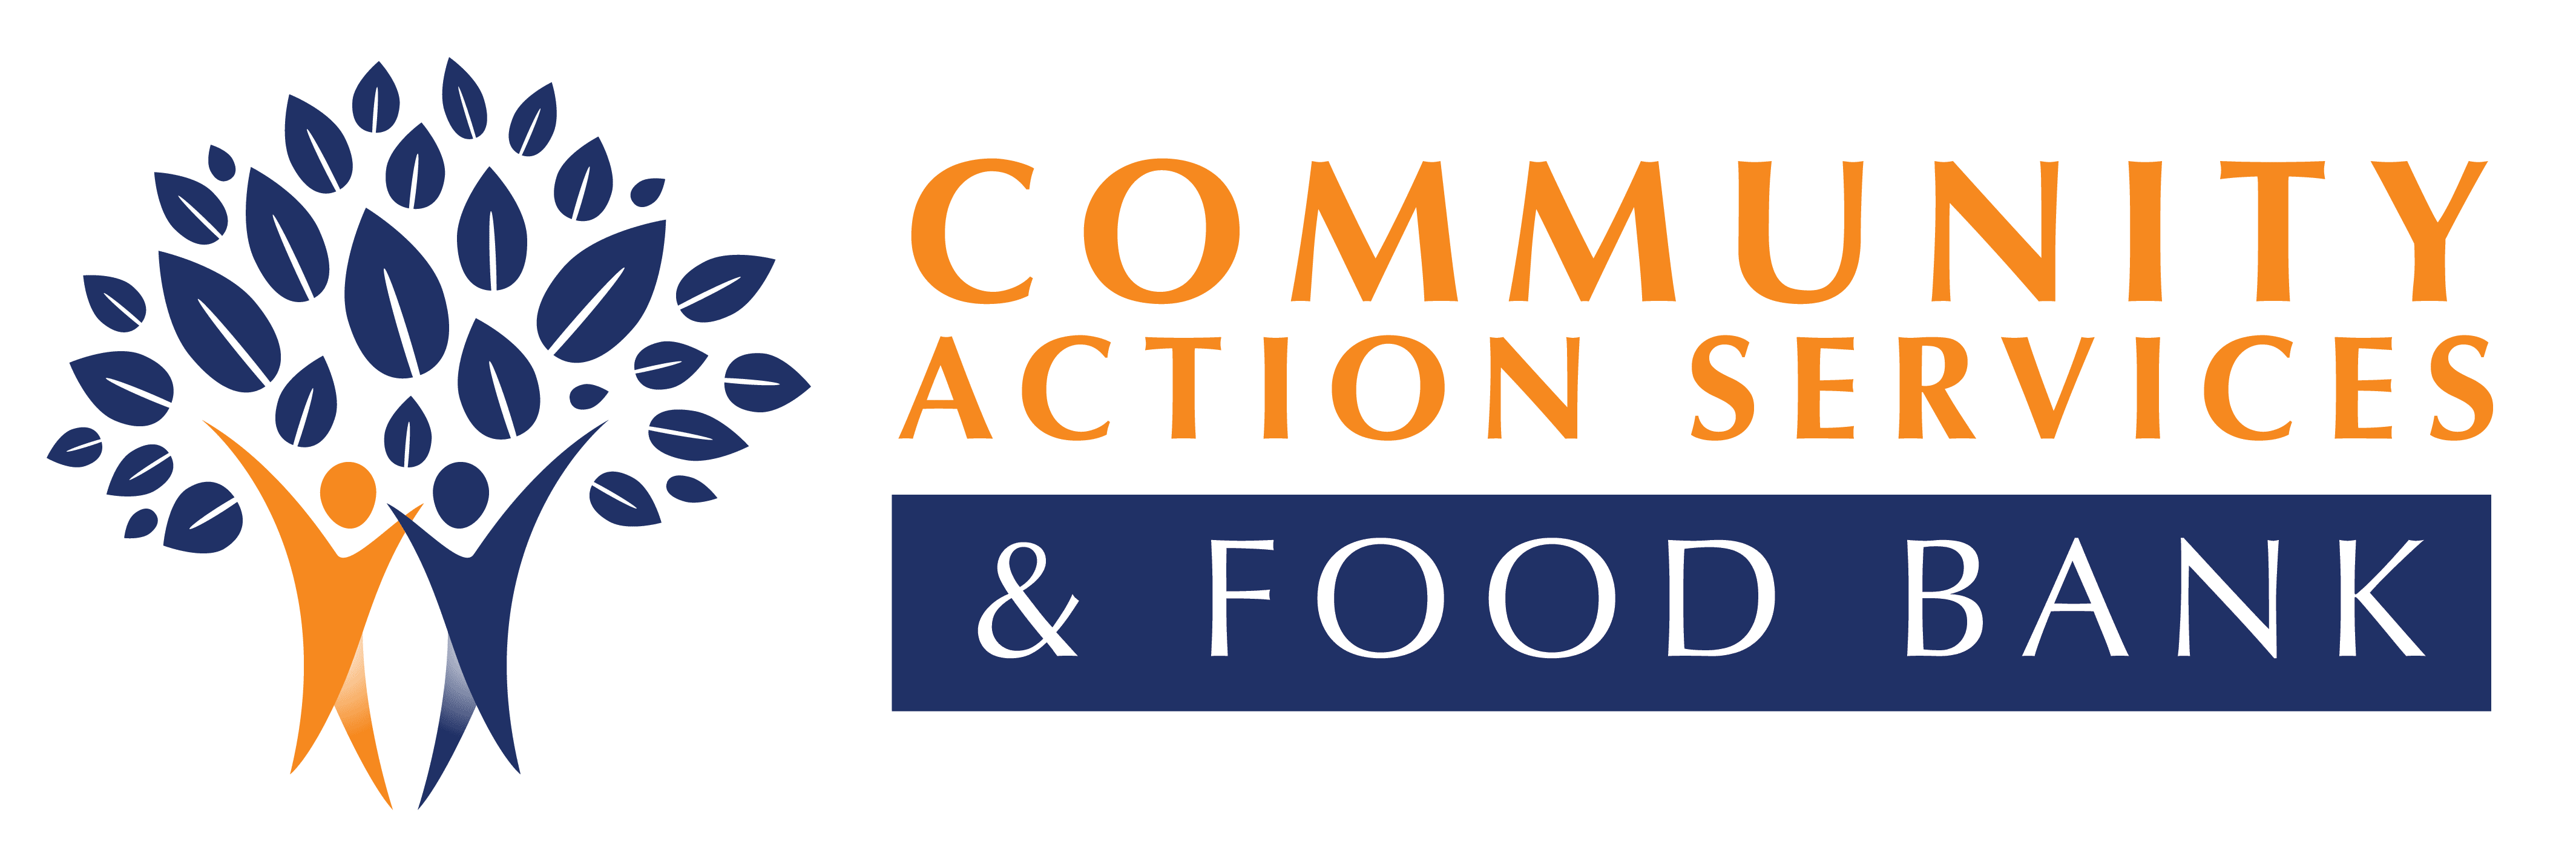 Community Action Services